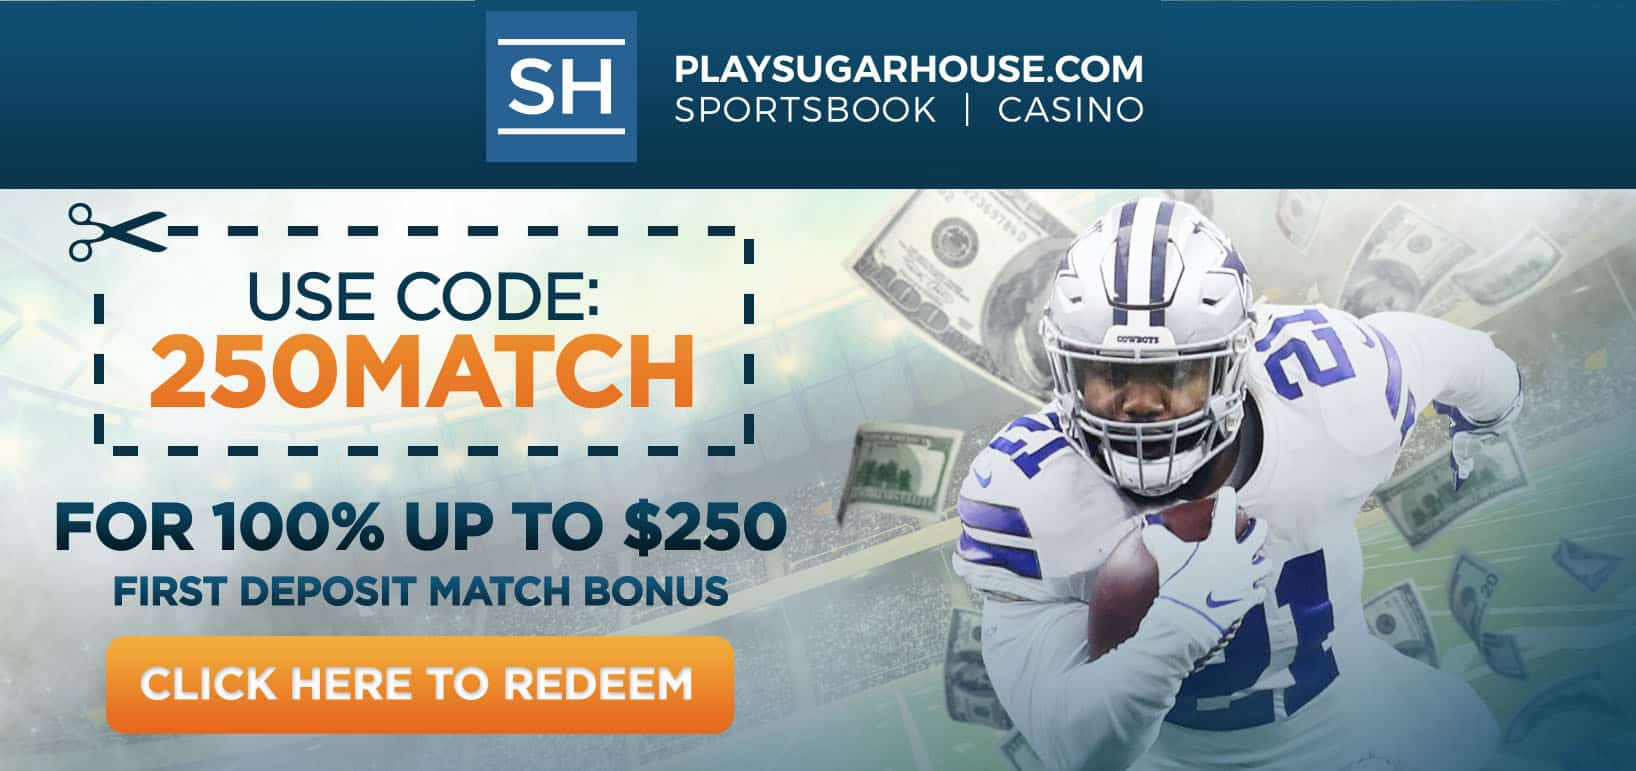 review of current sugarhouse bonus code offers